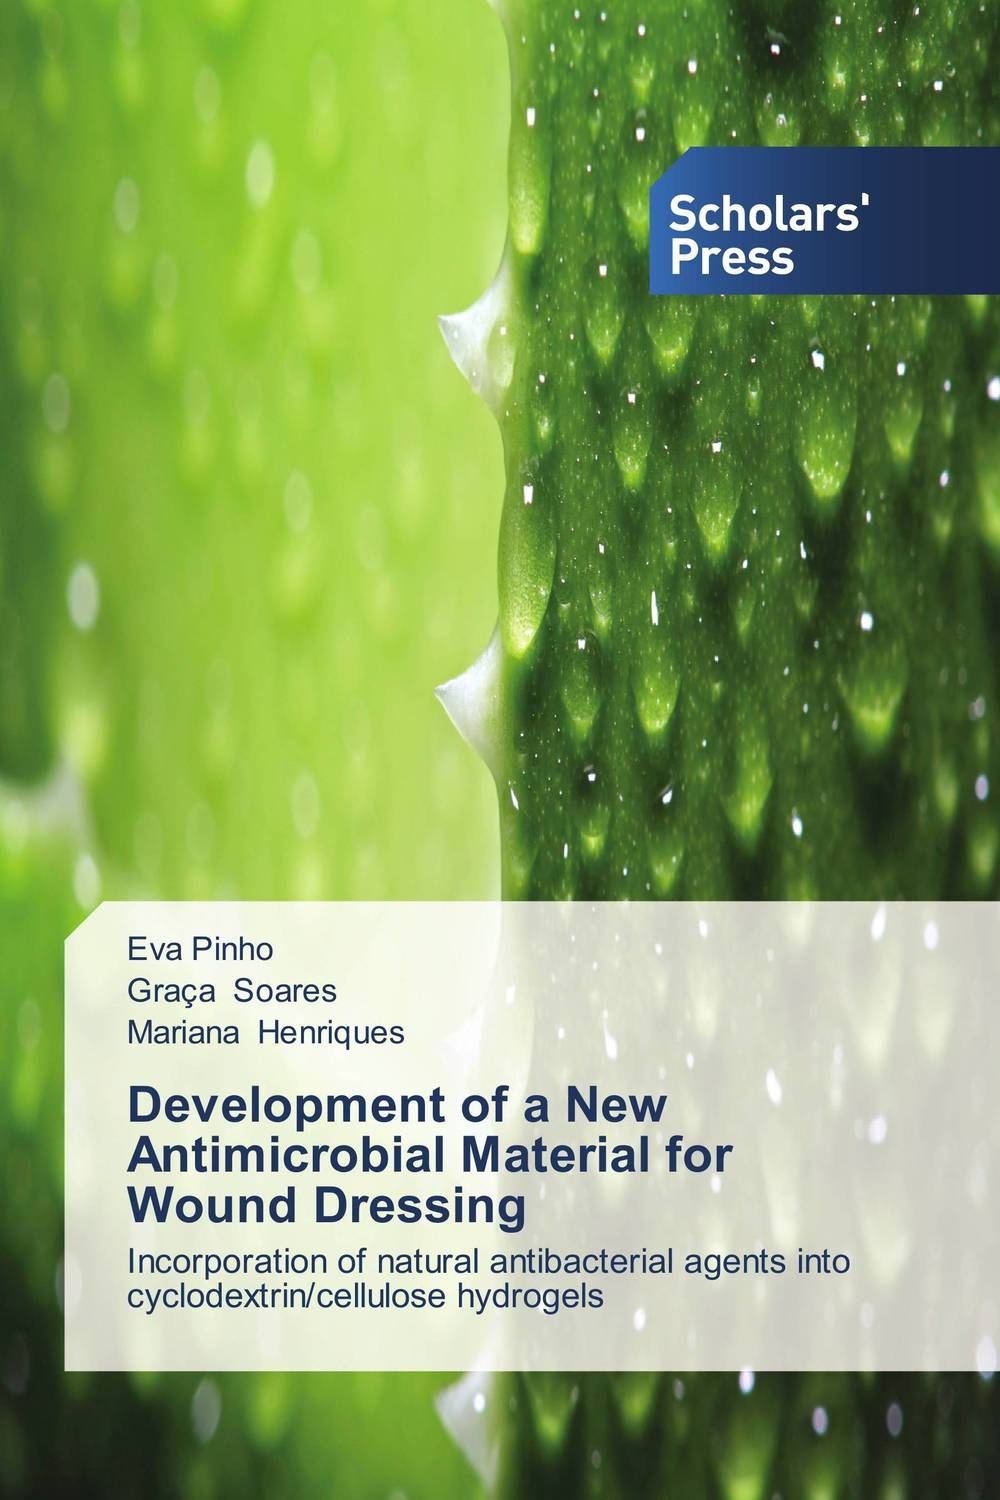 Development of a New Antimicrobial Material for Wound Dressing kazi rifat ahmed simu akter and kushal roy alternative development loom by reason of natural changes